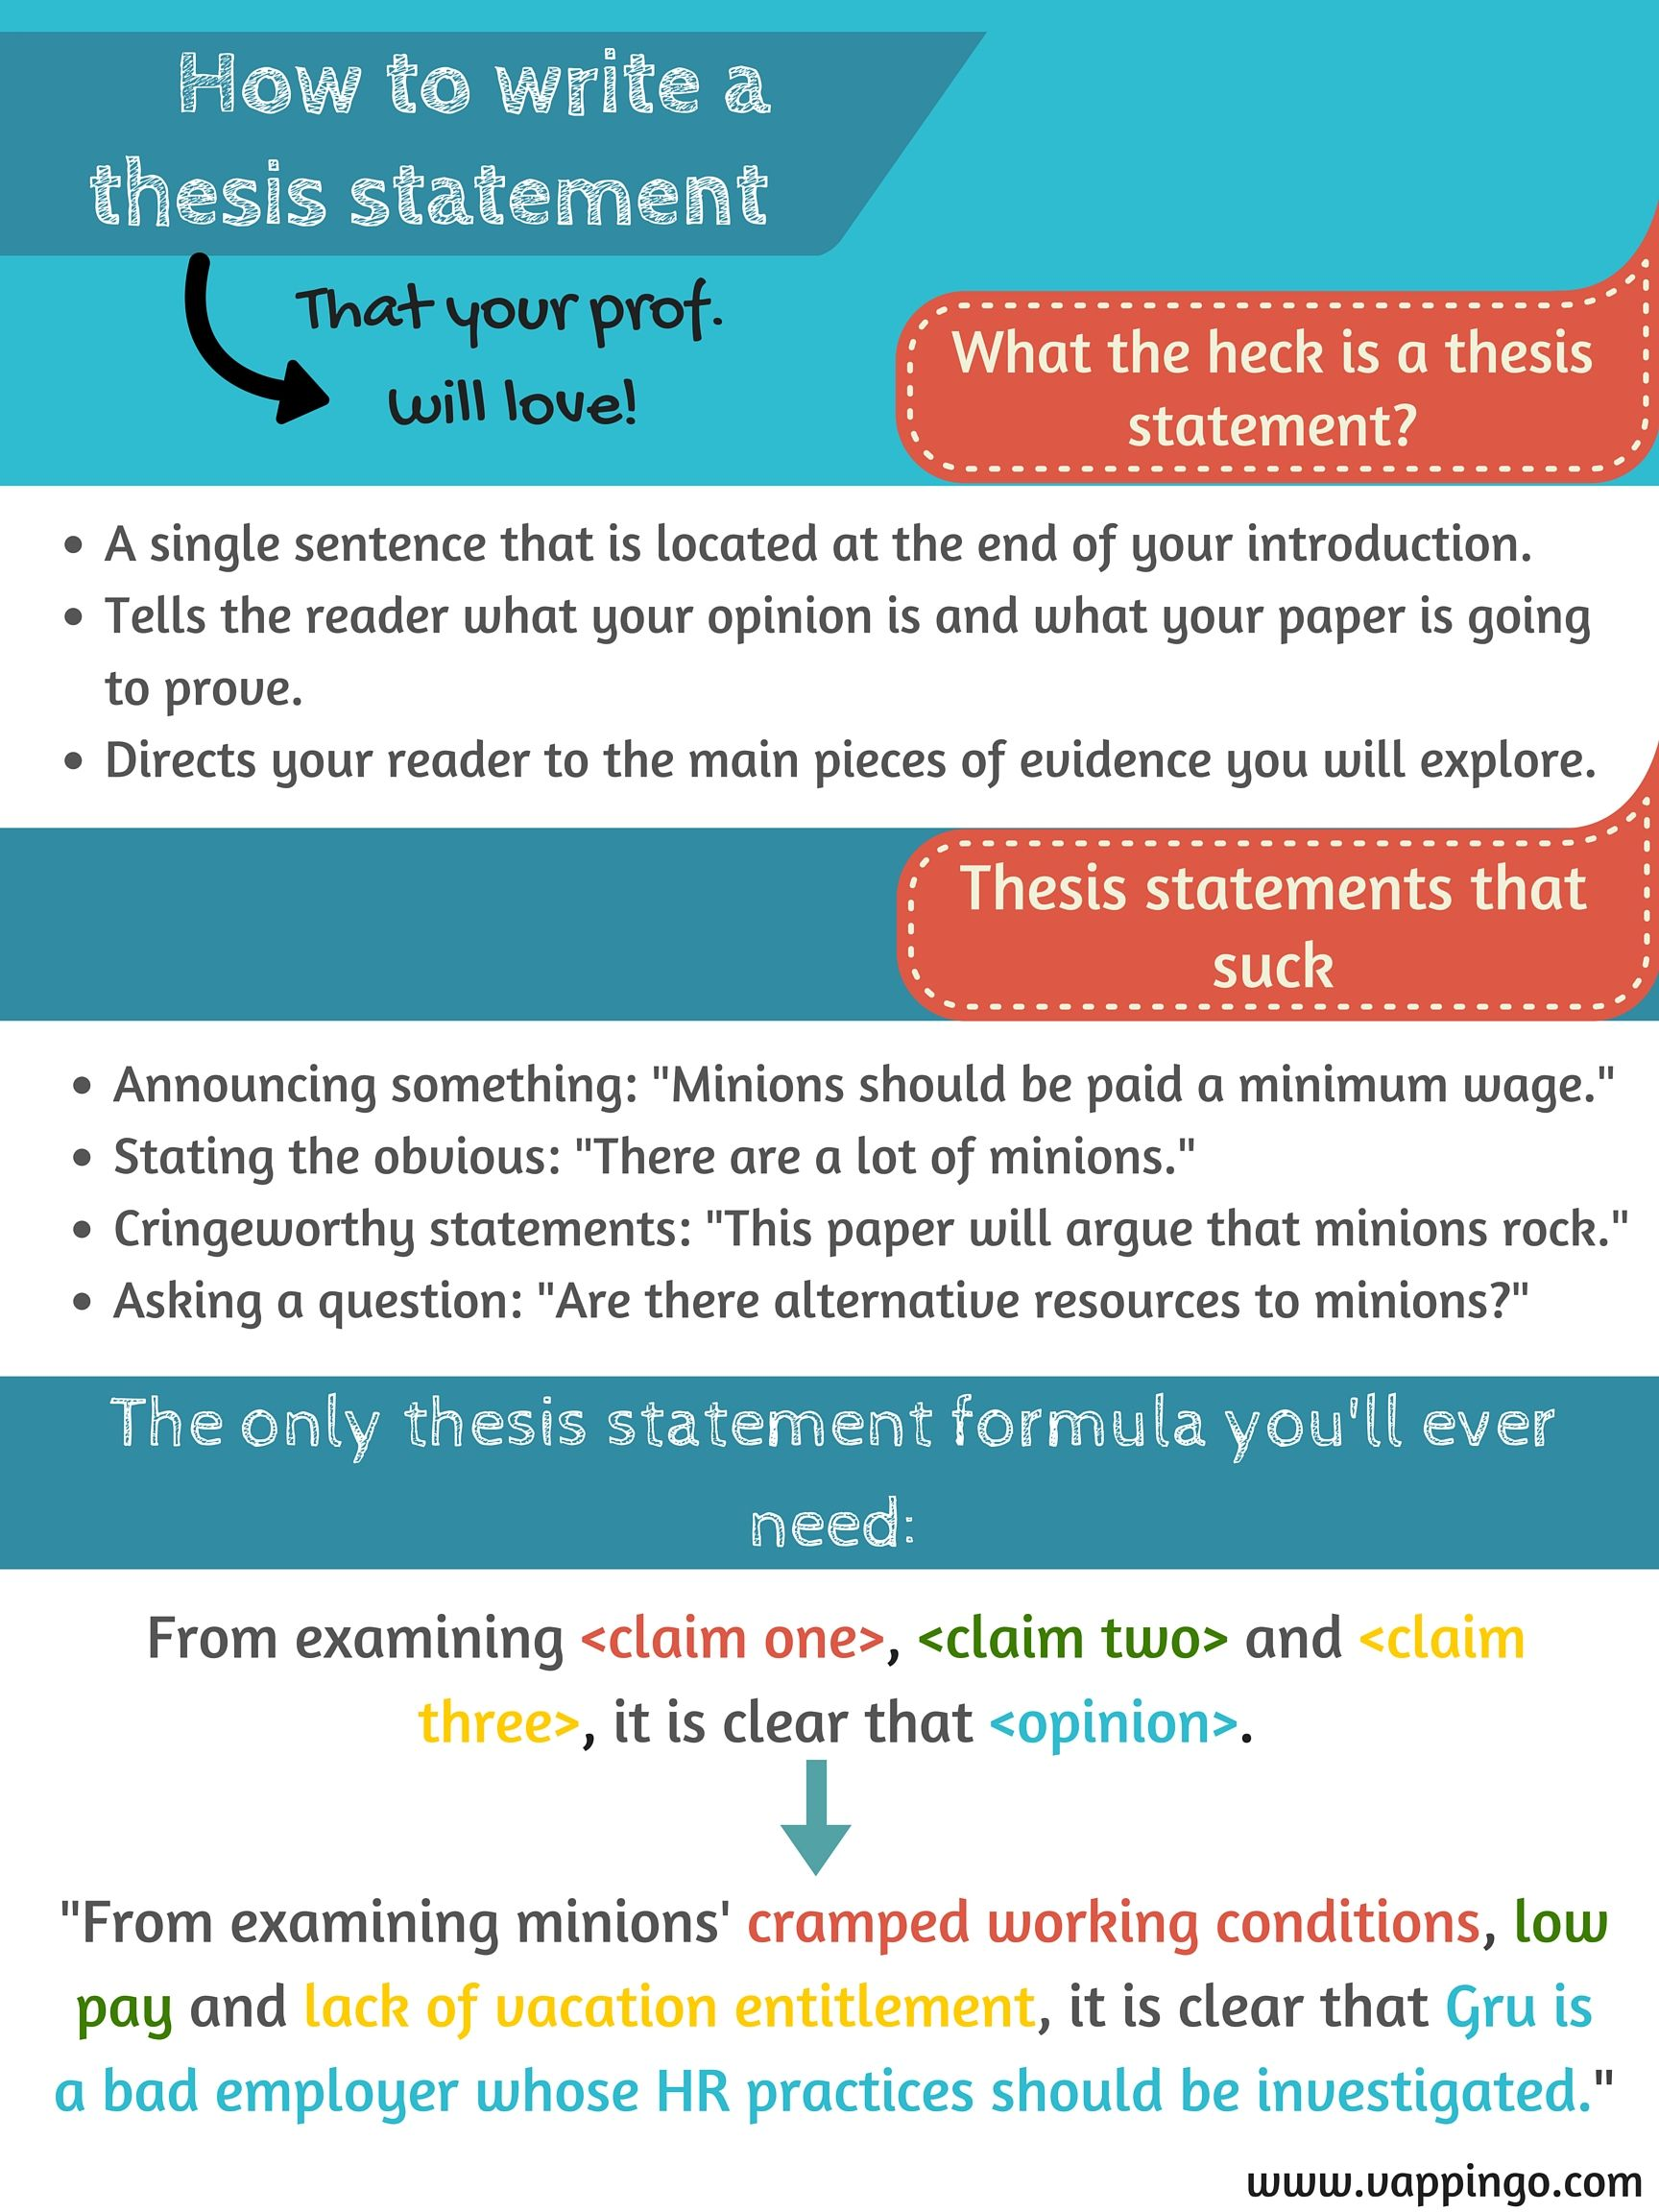 complete thesis statement Thesis statement examples is a compilation of a list of sample thesis statement so you can have an idea how to write a thesis statement.